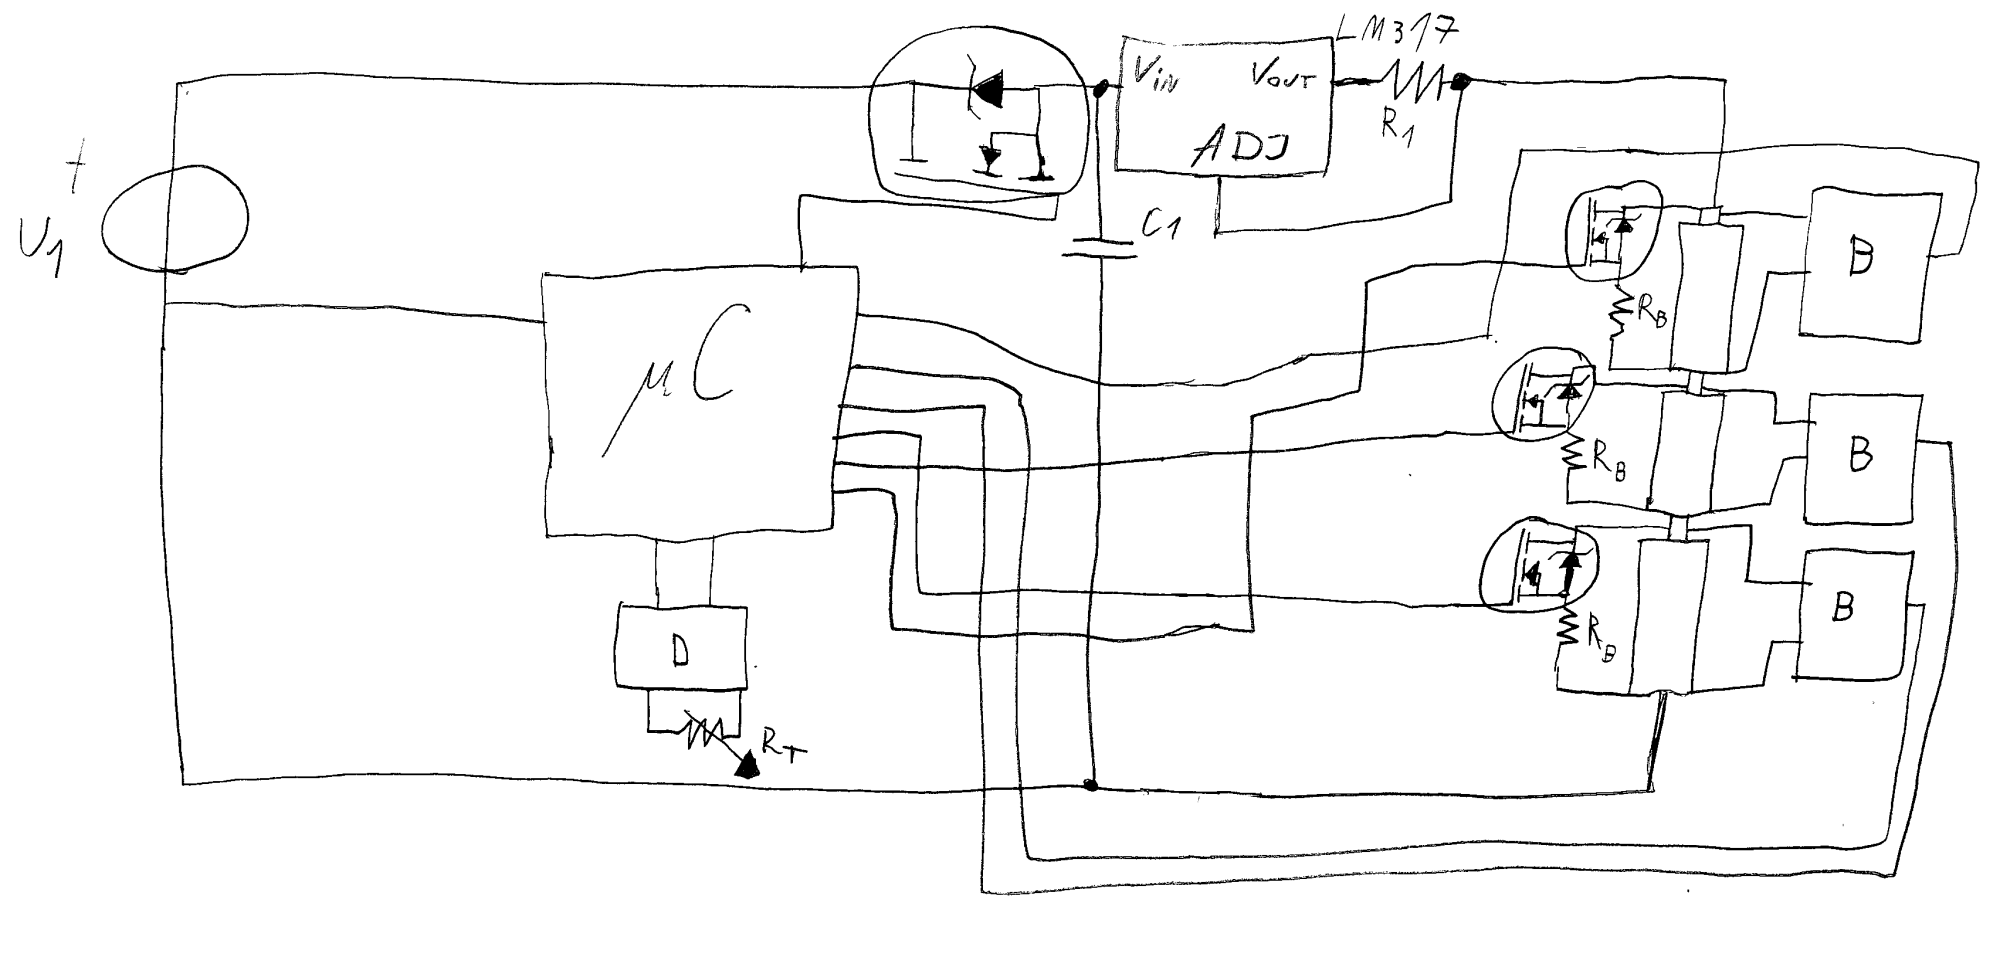 hight resolution of terrible freehand drawing of the circuit